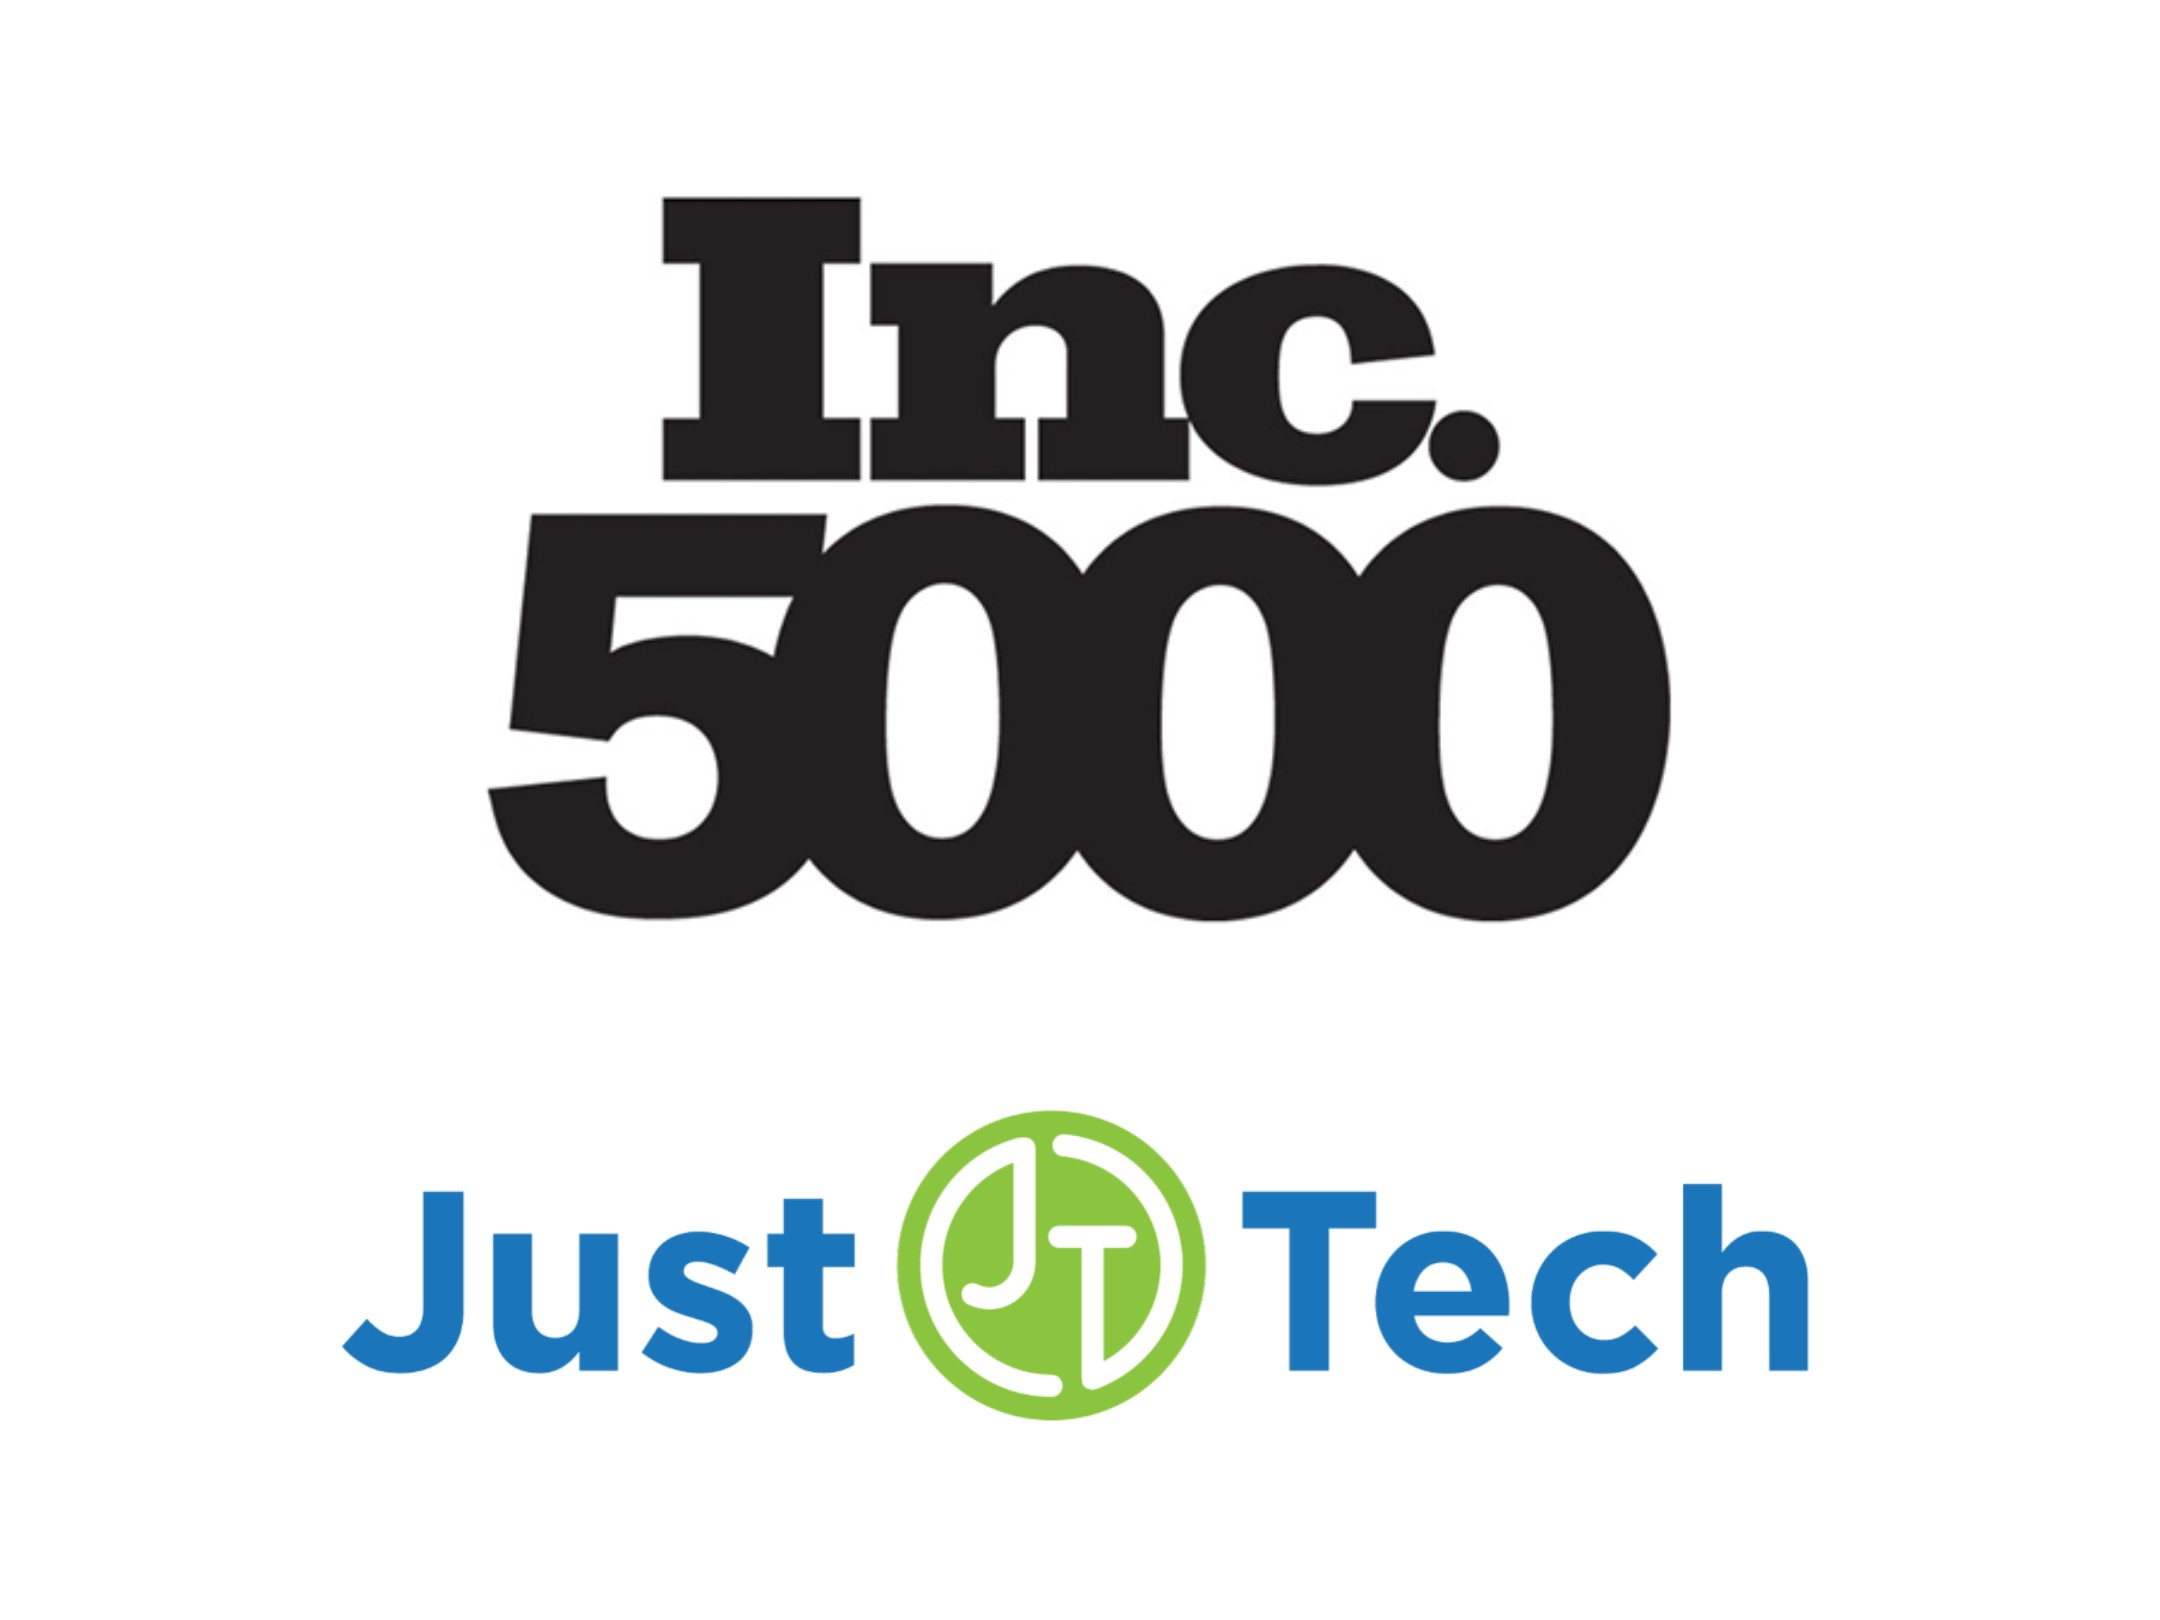 Justtech Ranks No 1442 On The 2020 Inc 5000 List Just Tech